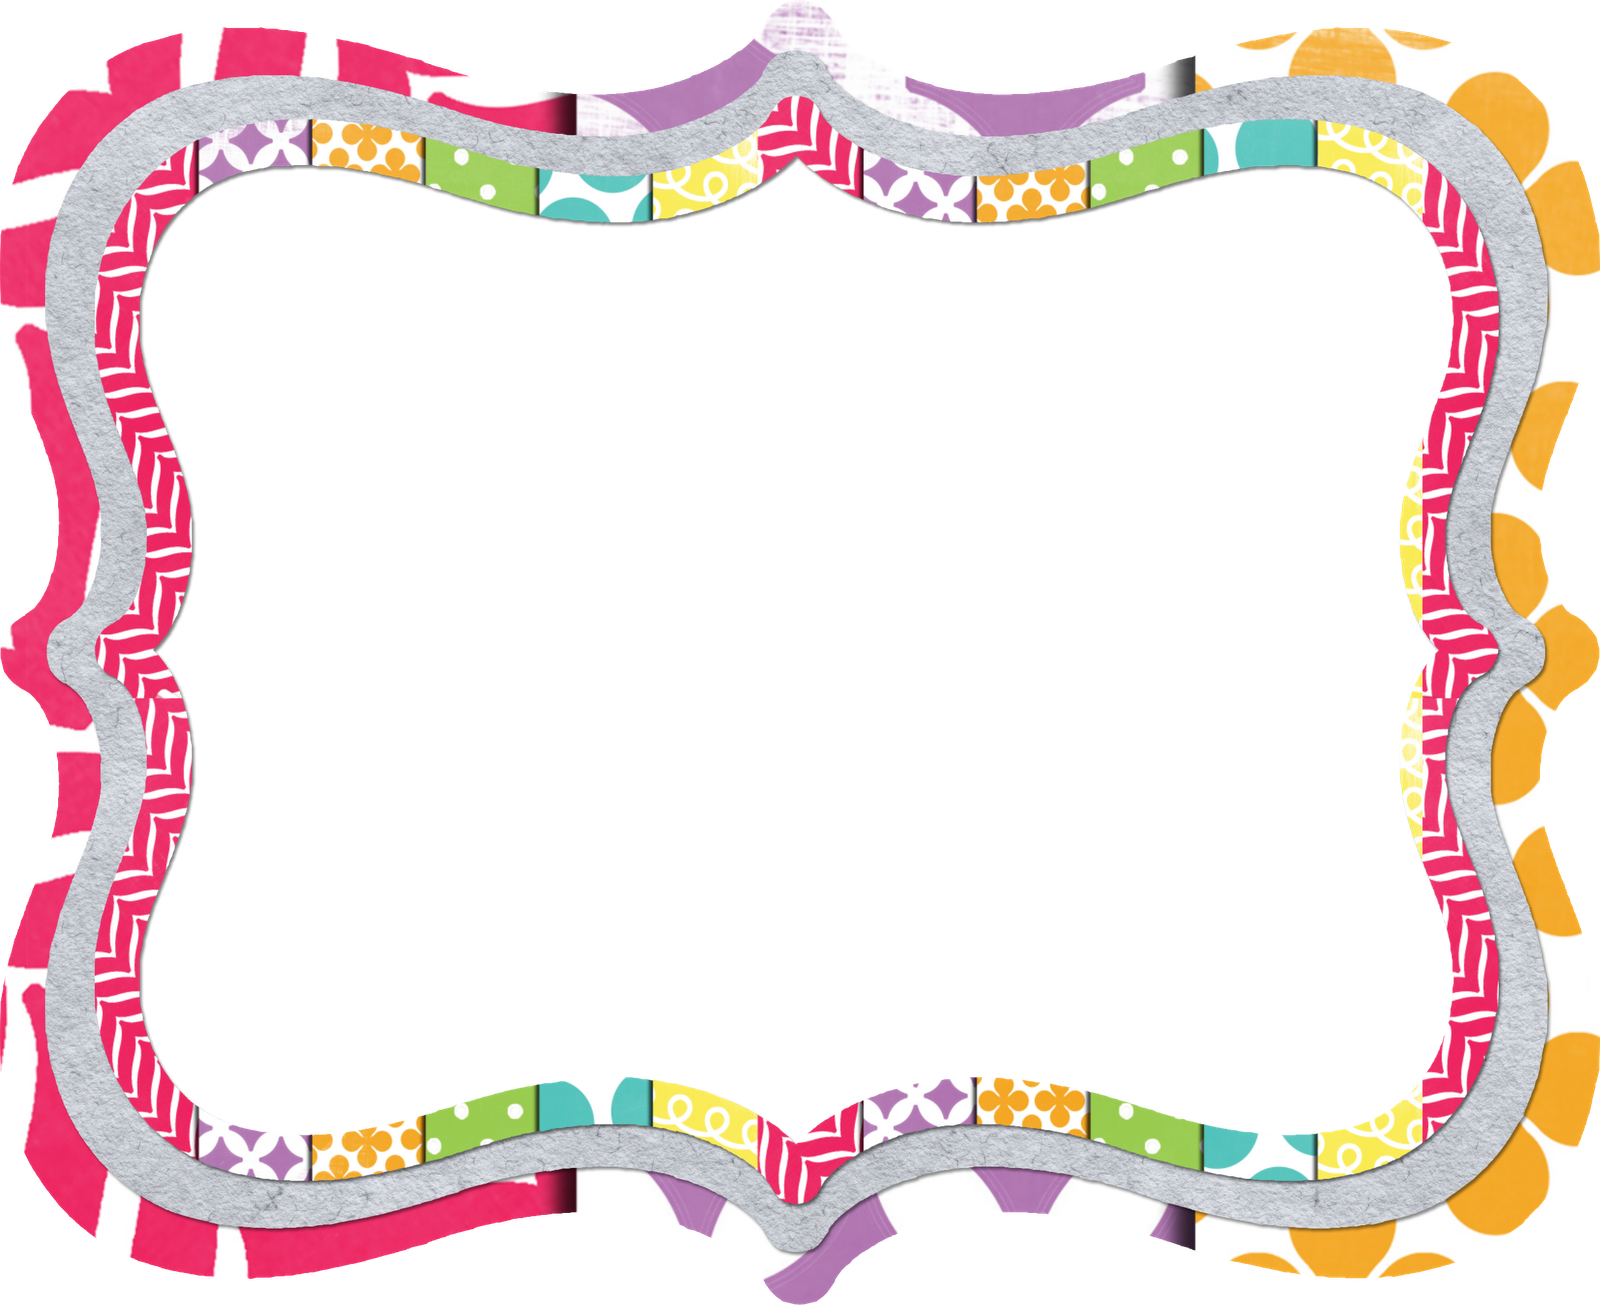 School border clipart black and white picture download School borders and frames free clipart images - ClipartPost picture download